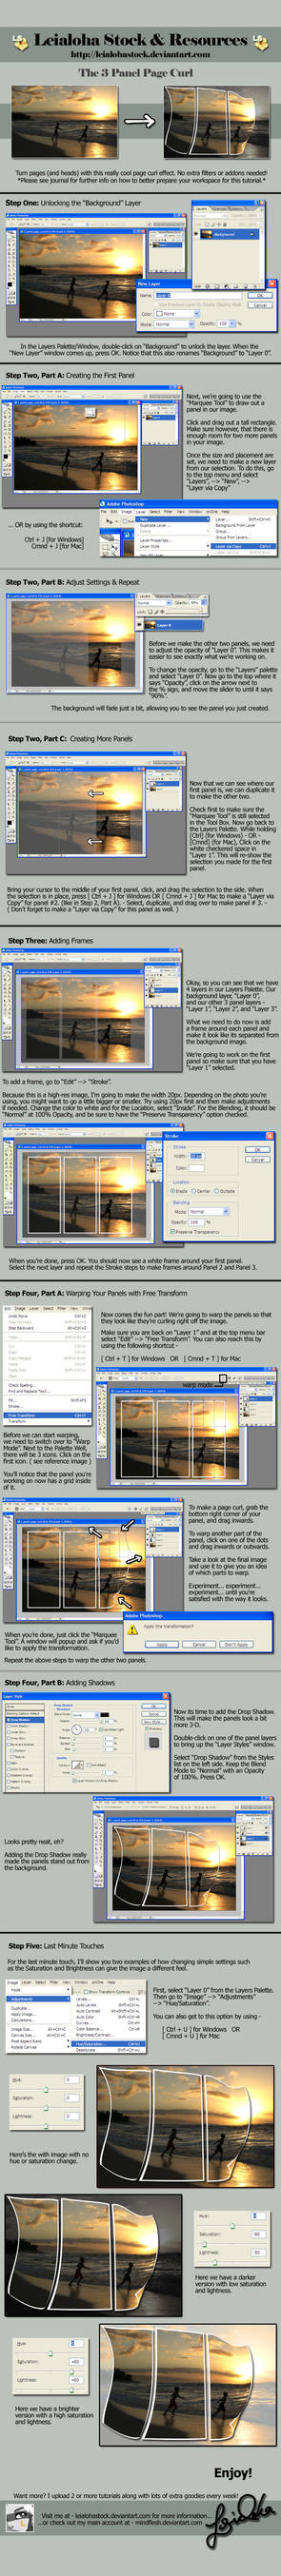 3 Panel Page Curl - Tutorial by leialohastock on DeviantArt